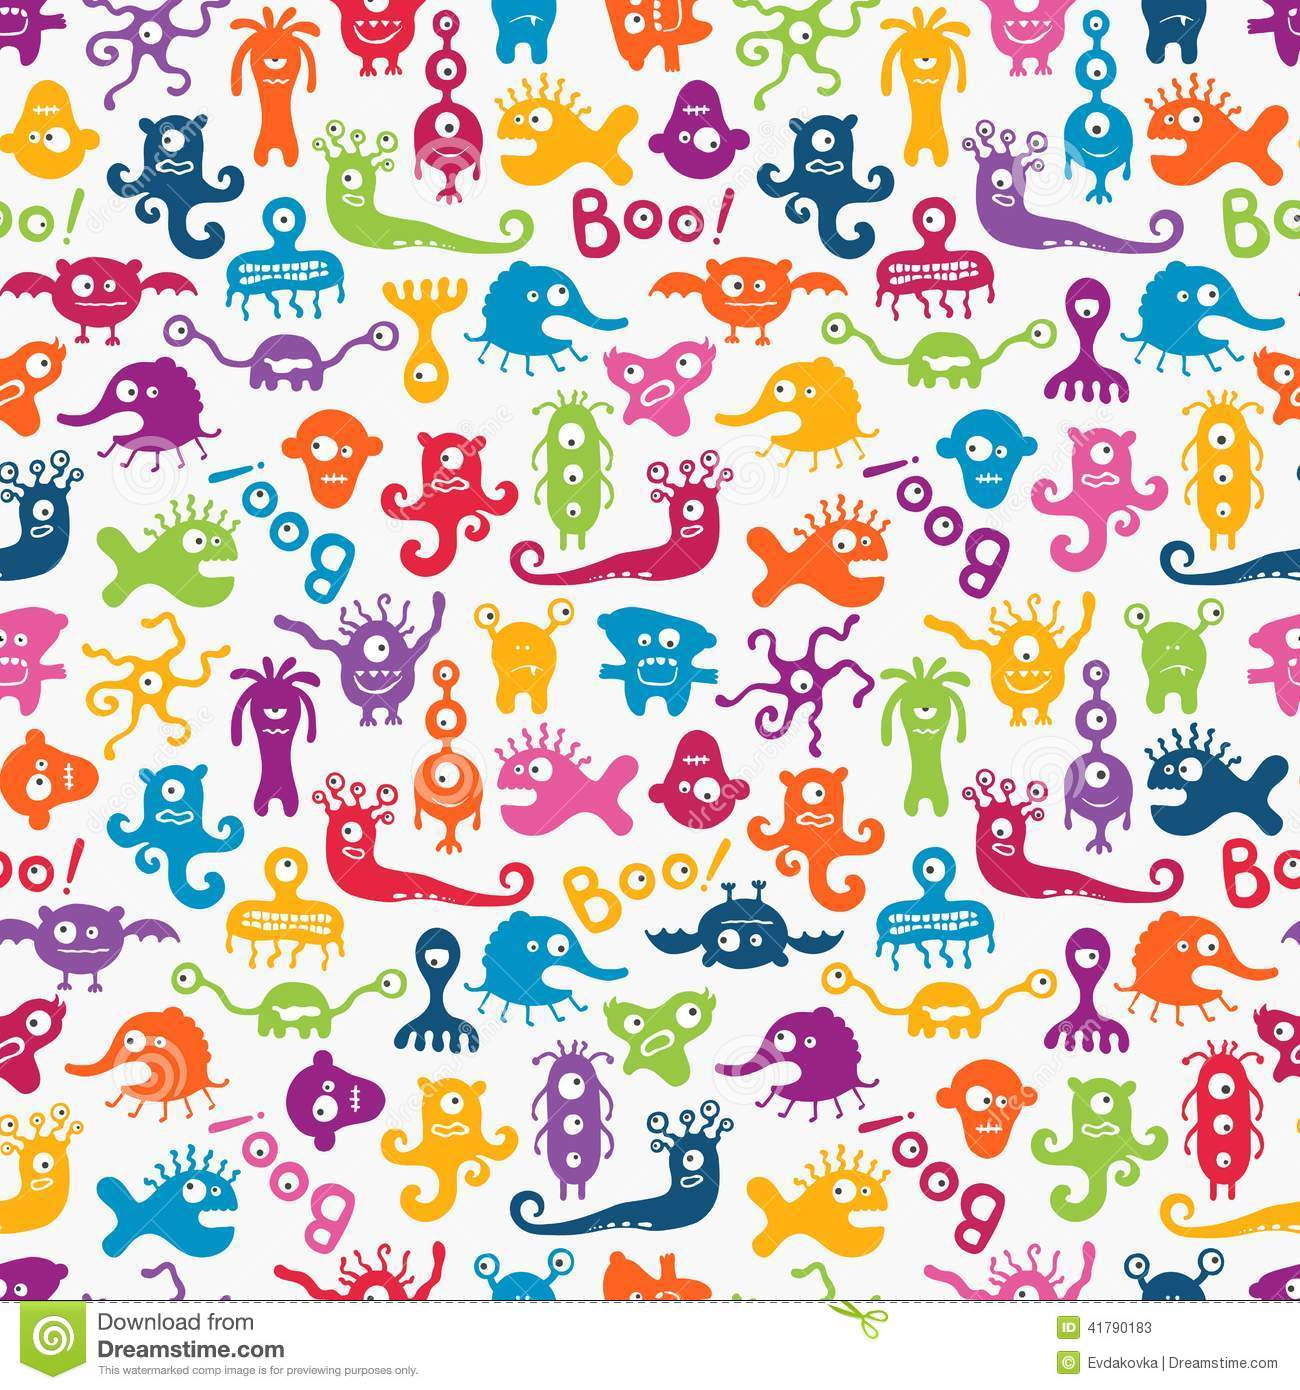 Wallpaper Monster Inc 3d Vector Seamless Pattern With Cute Baby Monsters Stock